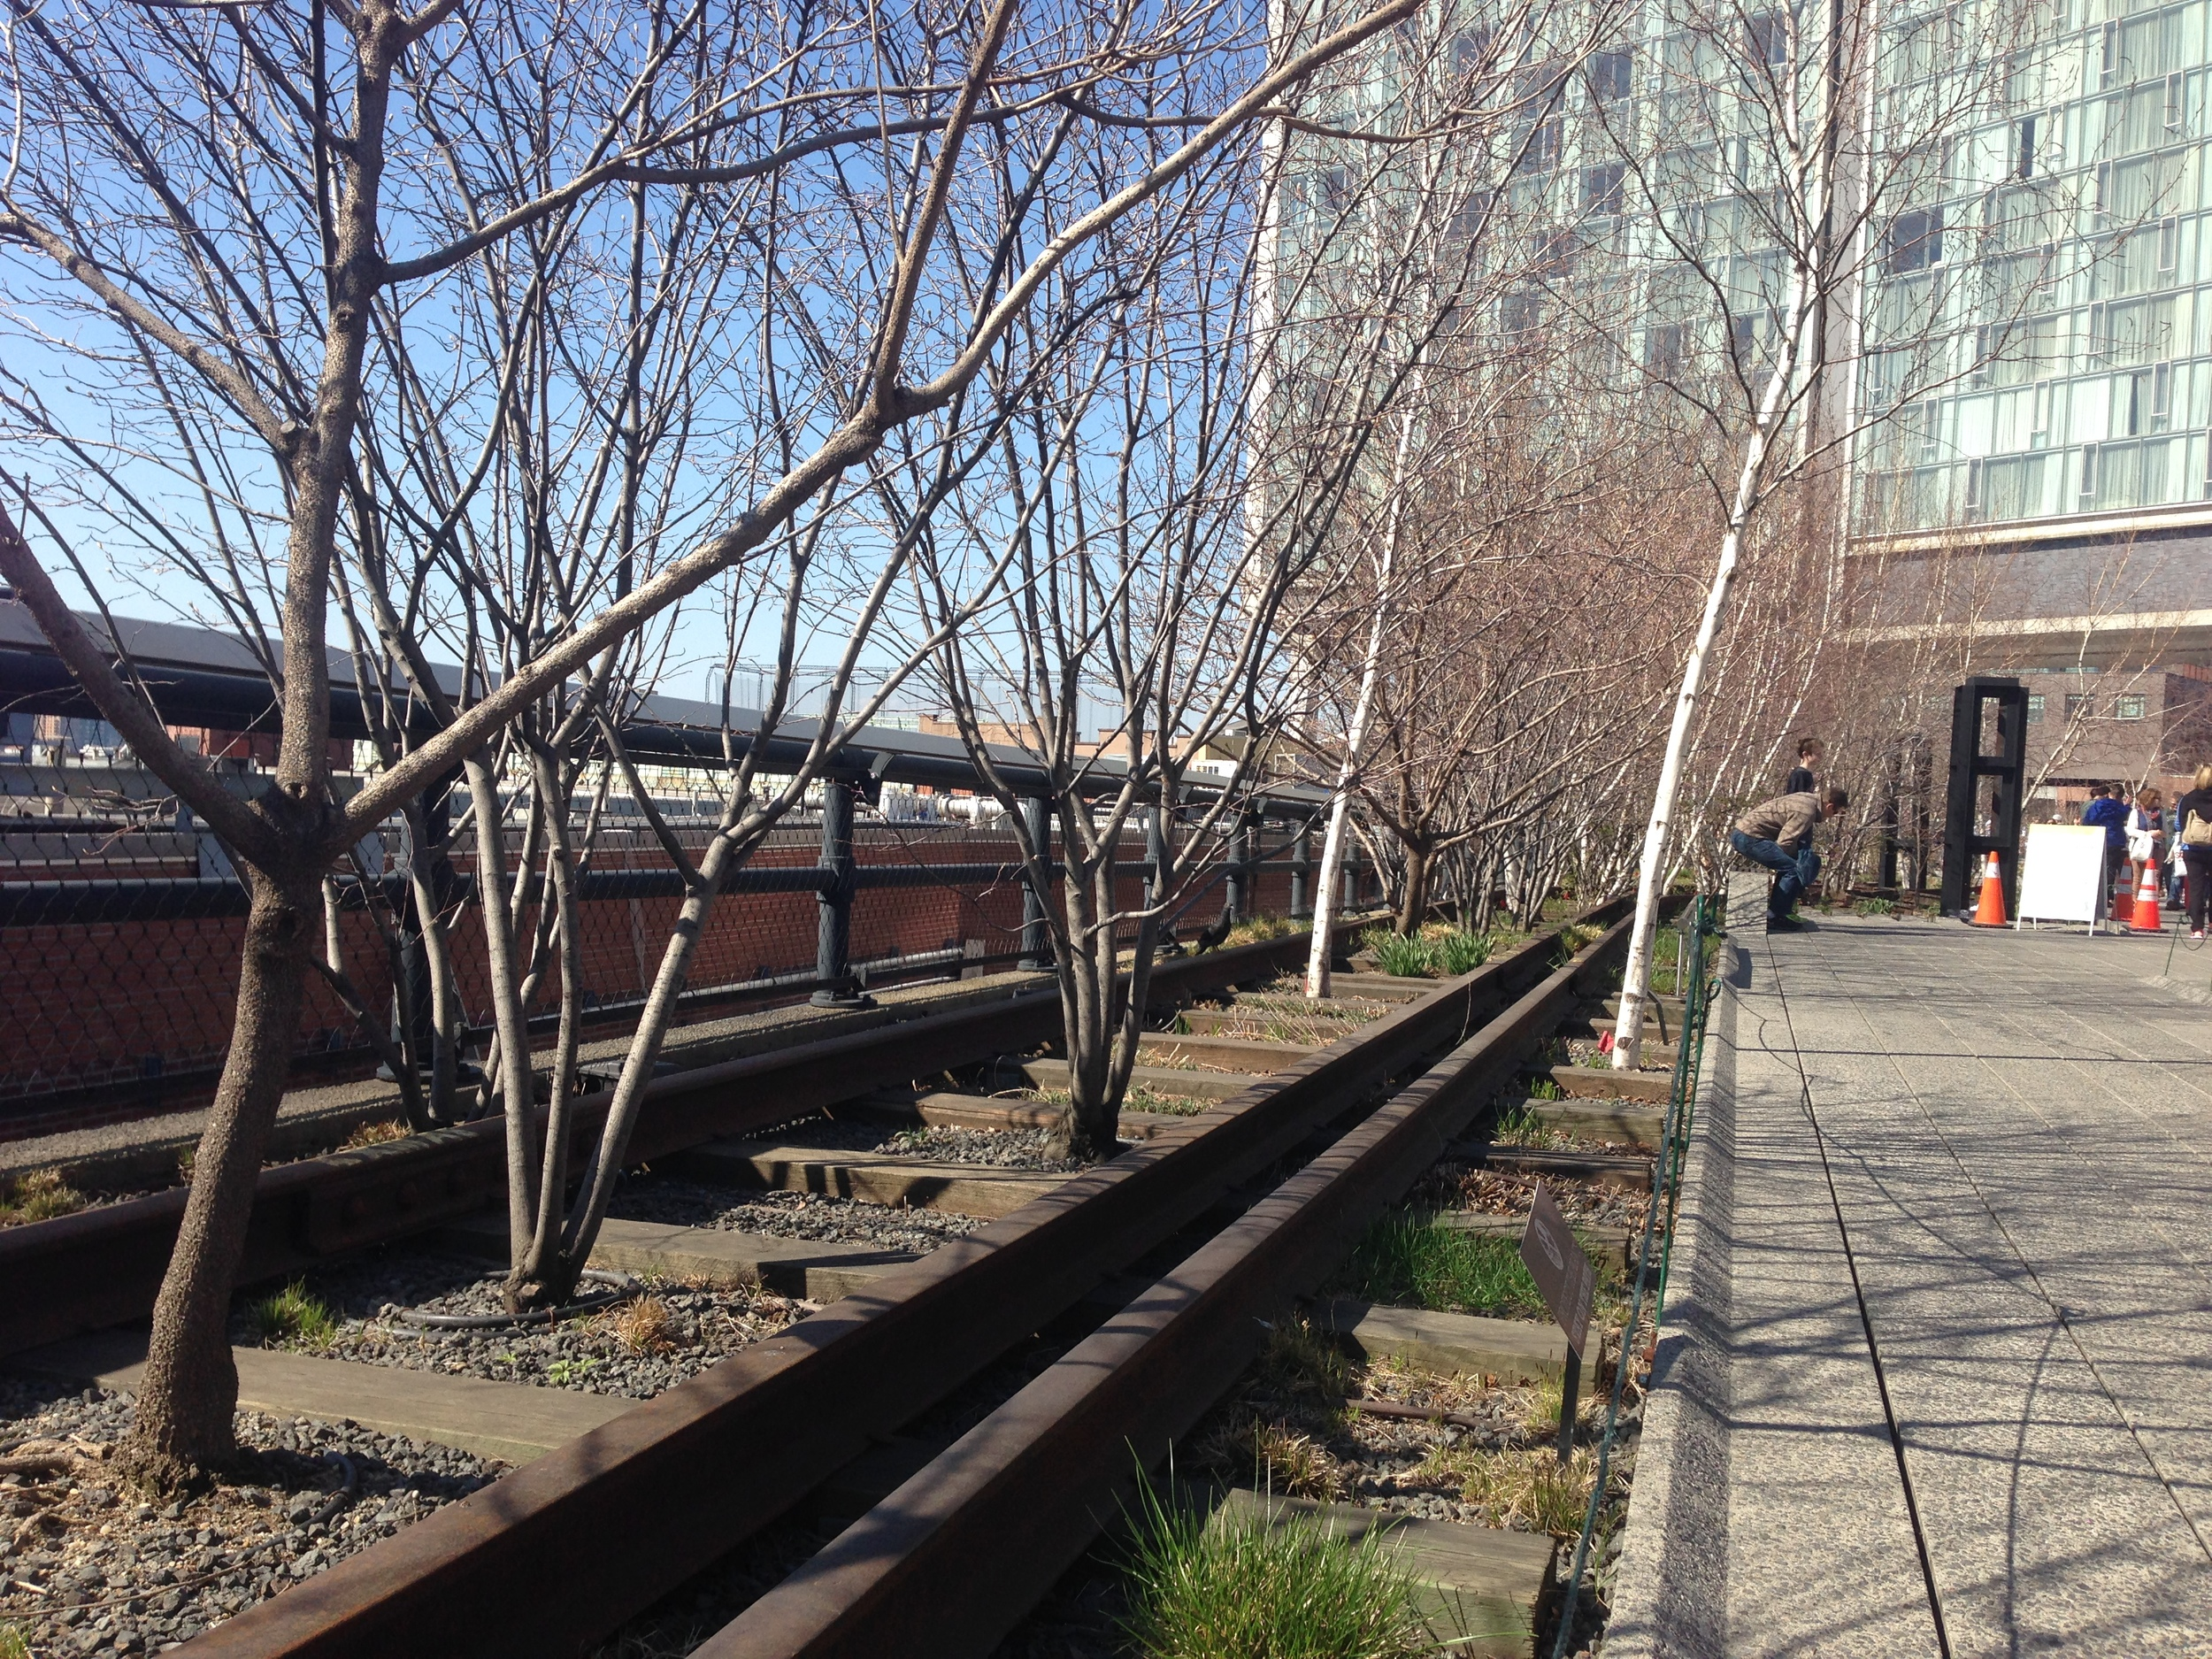 Our visit to the High Line